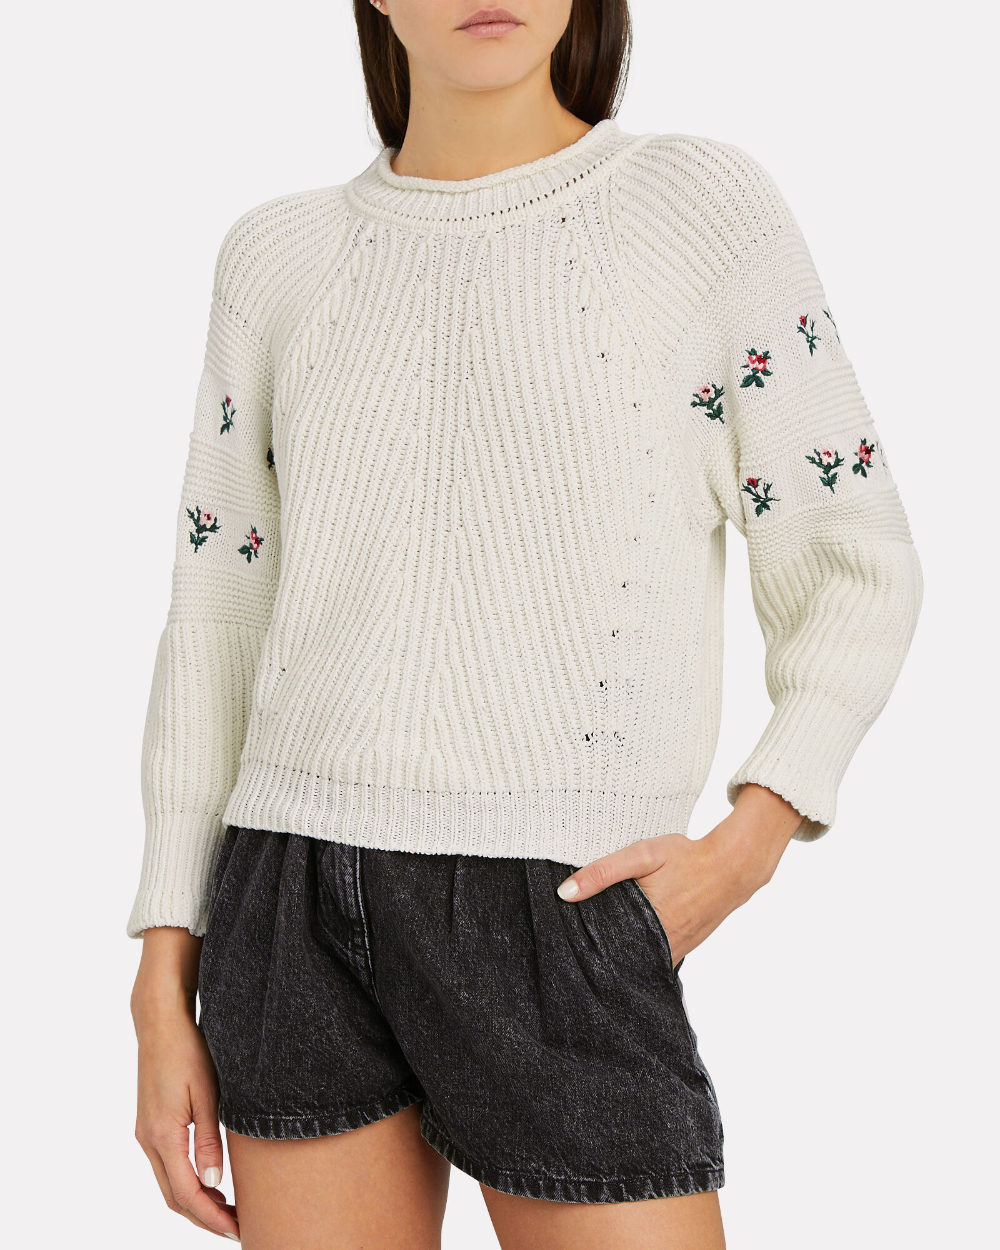 Floral Embroidered Knit Sweater in 2020 | Sweater design